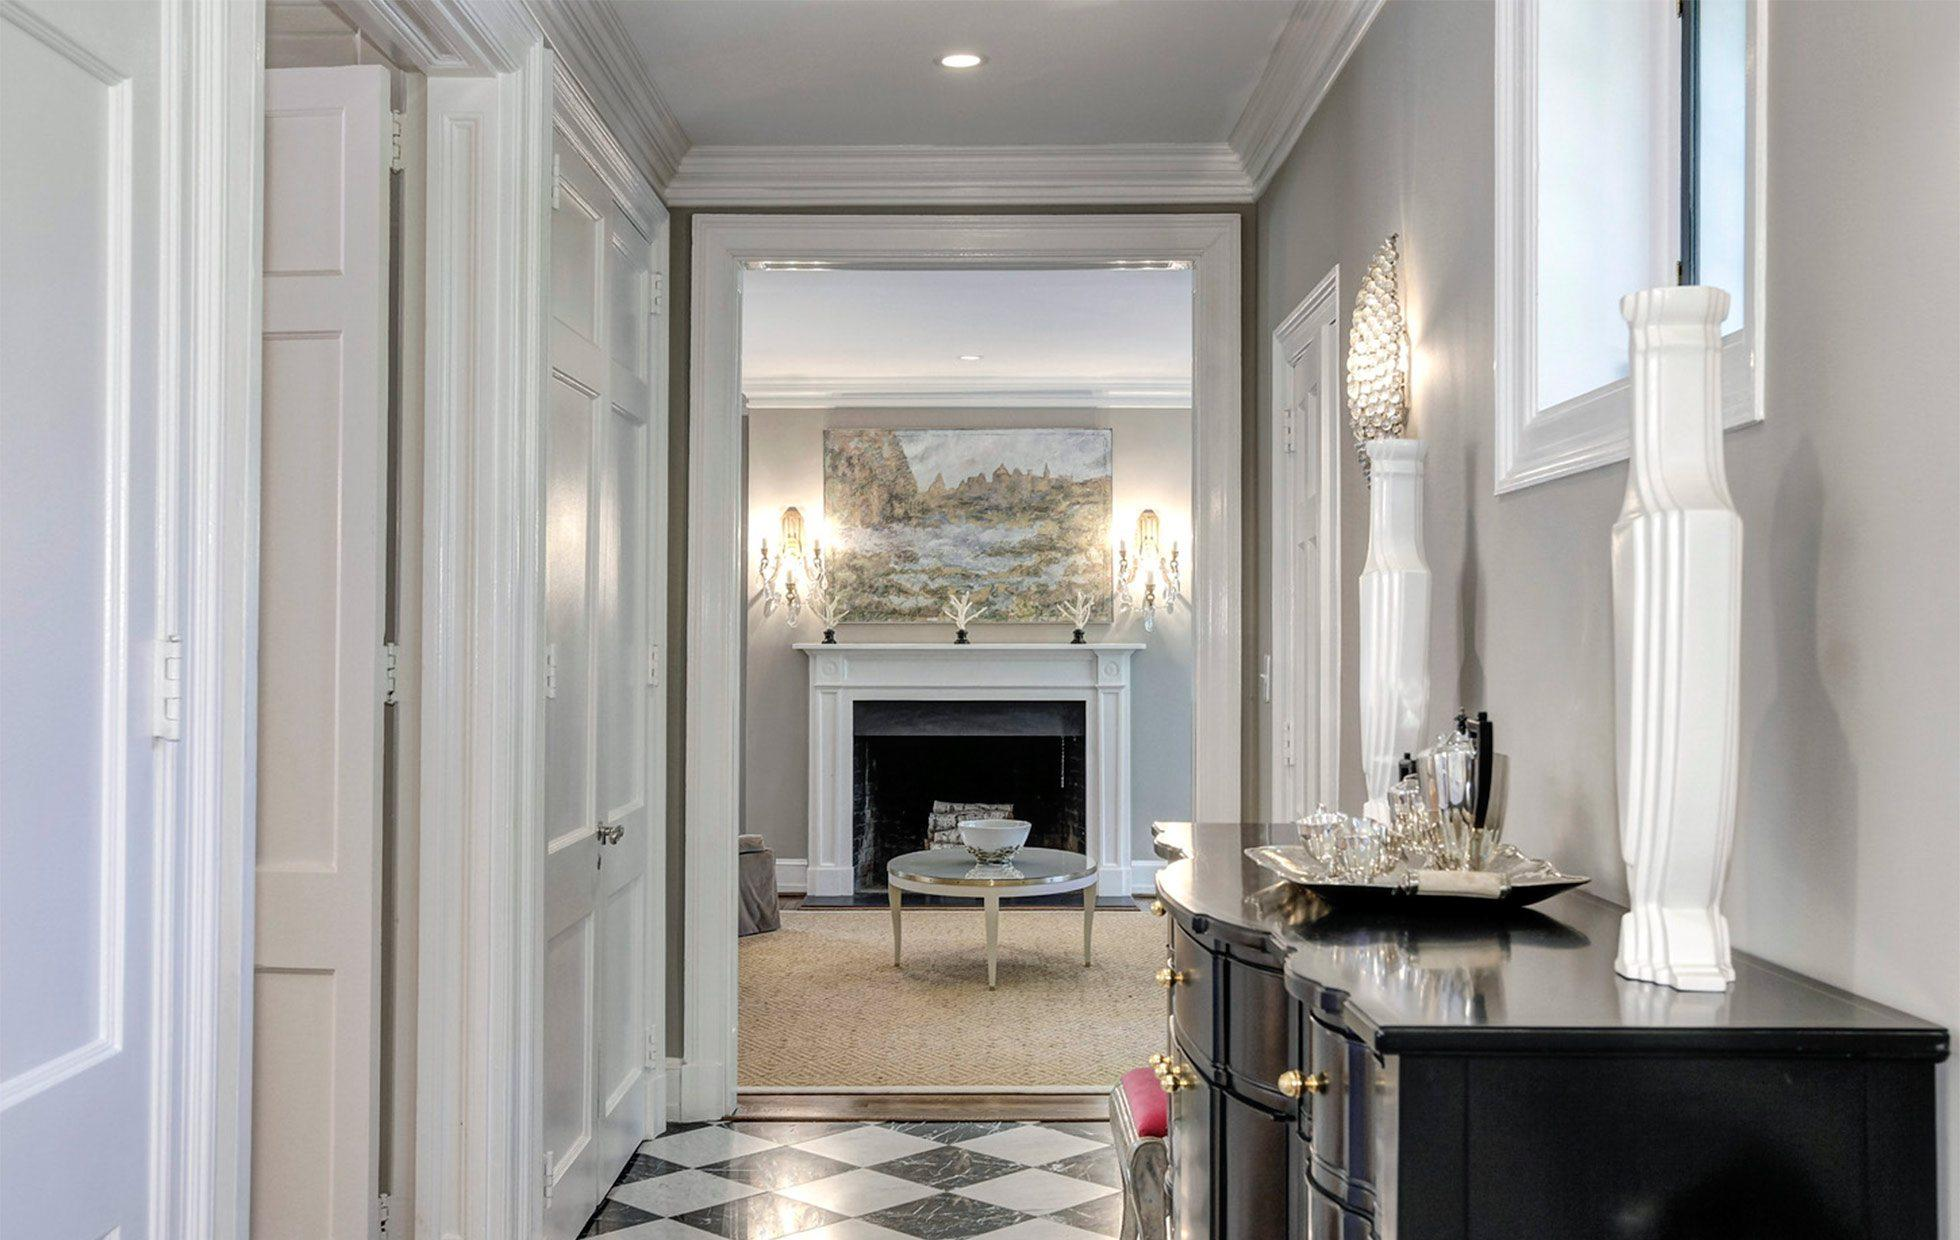 5881ff425bd092446-Belmont-Road-NW-Washington-DC-Obamas-New-Home-Hall (1)